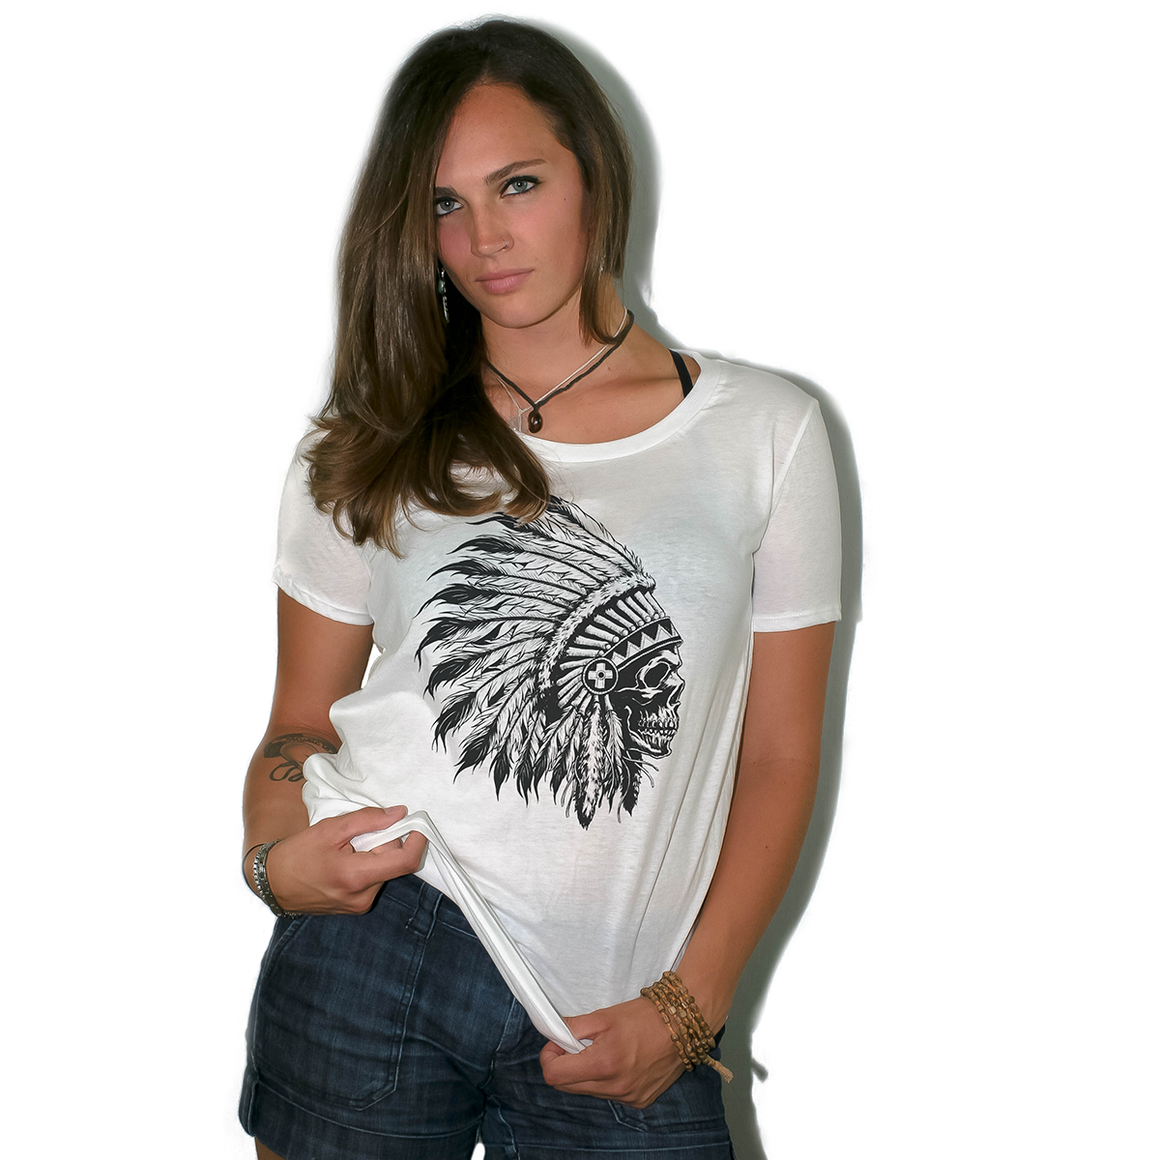 Chief Skull Women's Loose Fit Boyfriend T Shirt